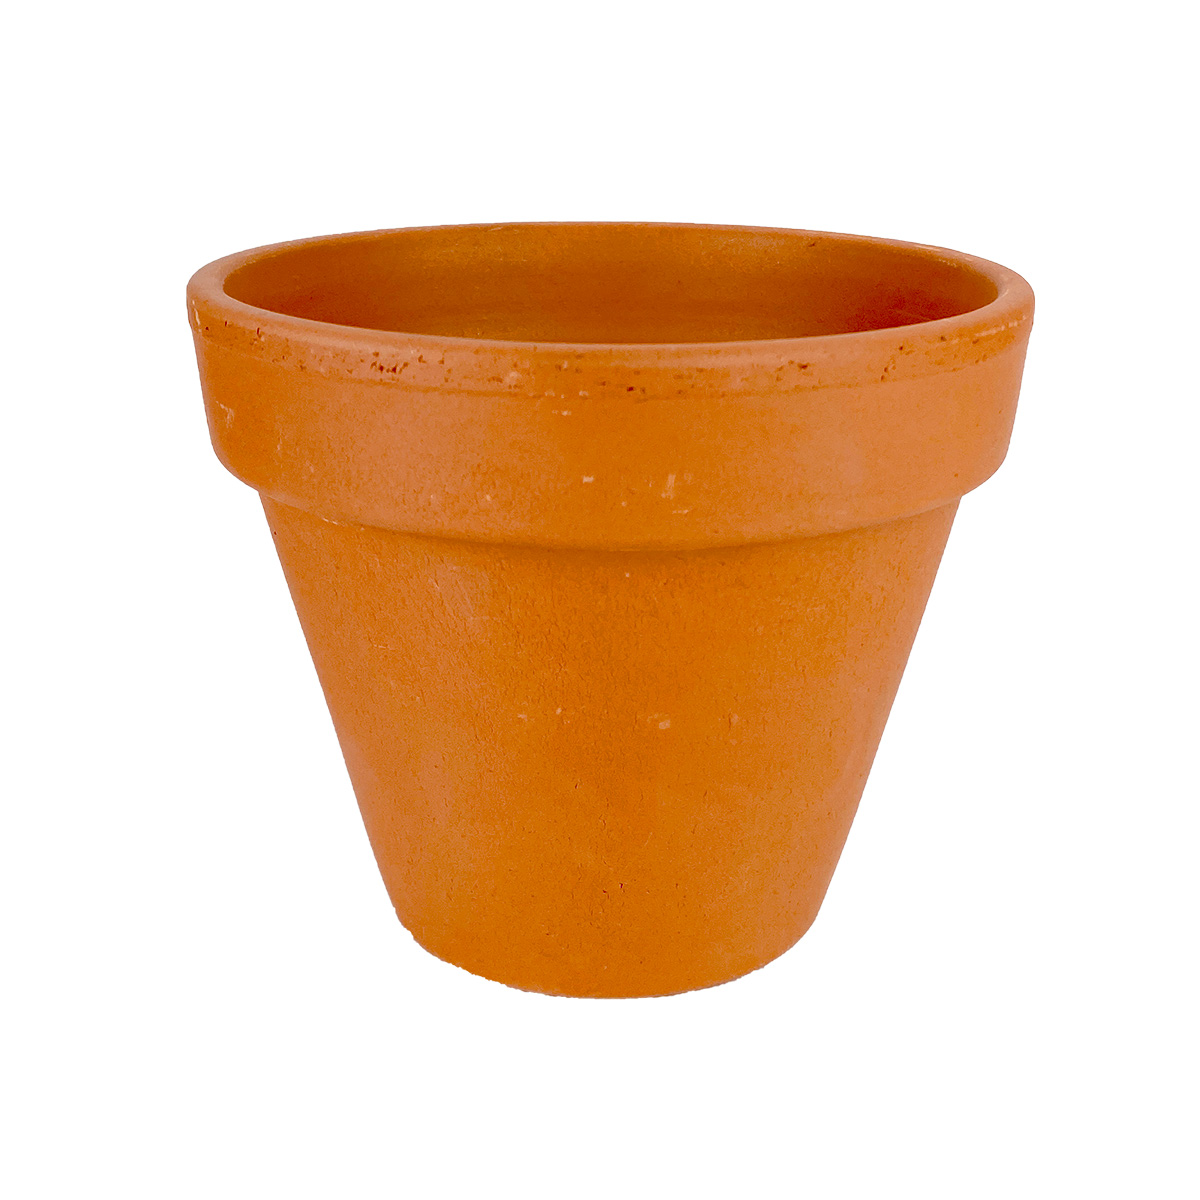 6in_TerraCottaPot.jpg